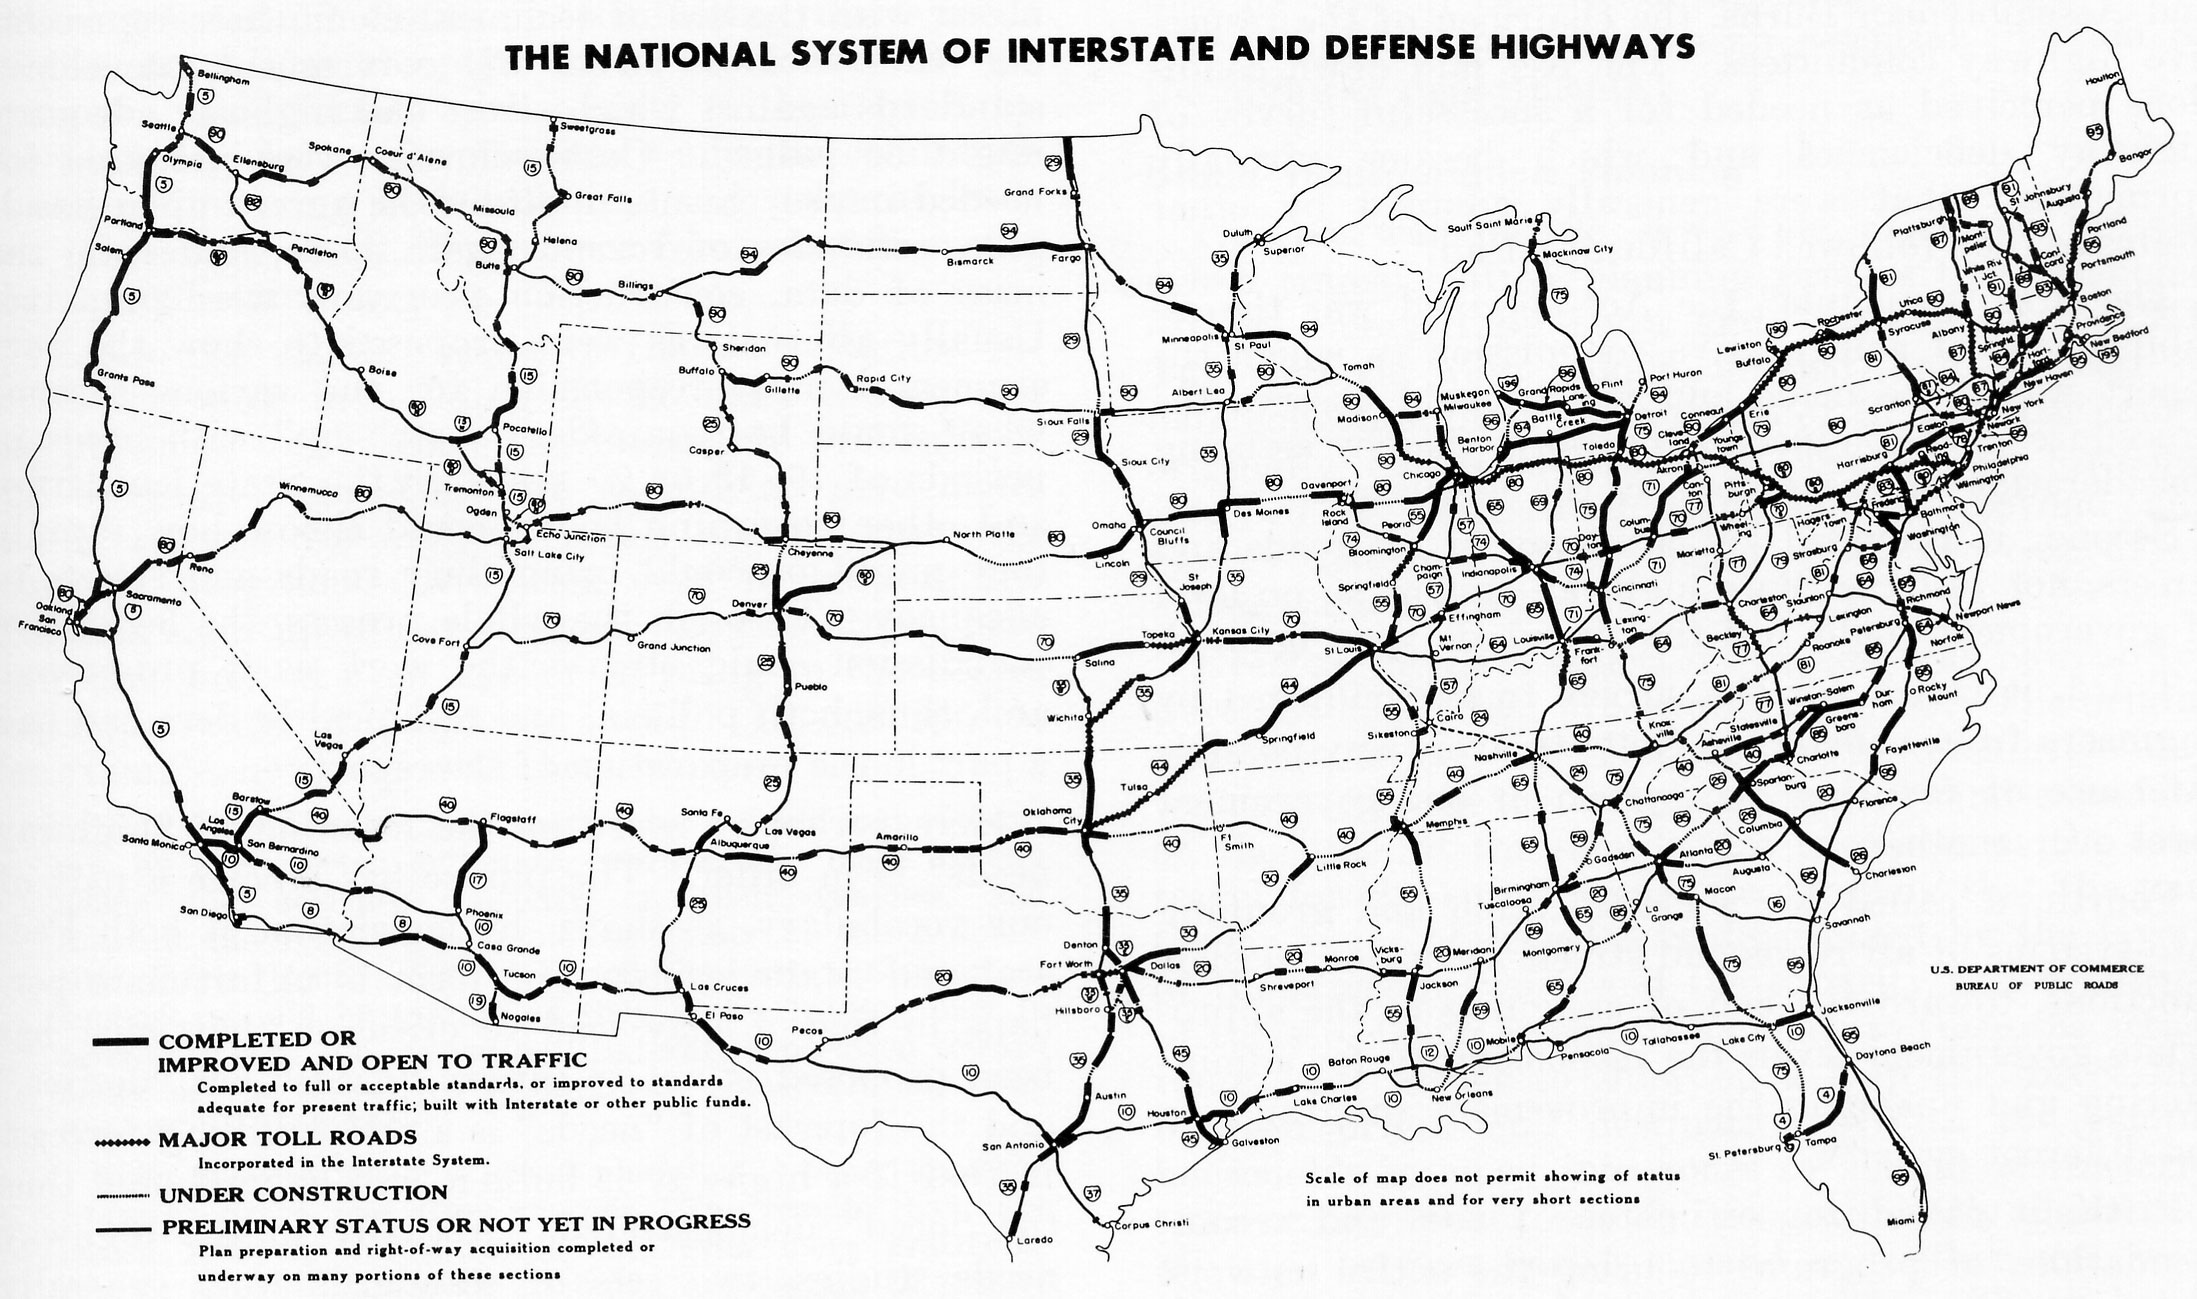 Map Usa Highway File:Interstate Highway status unknown date.jpg